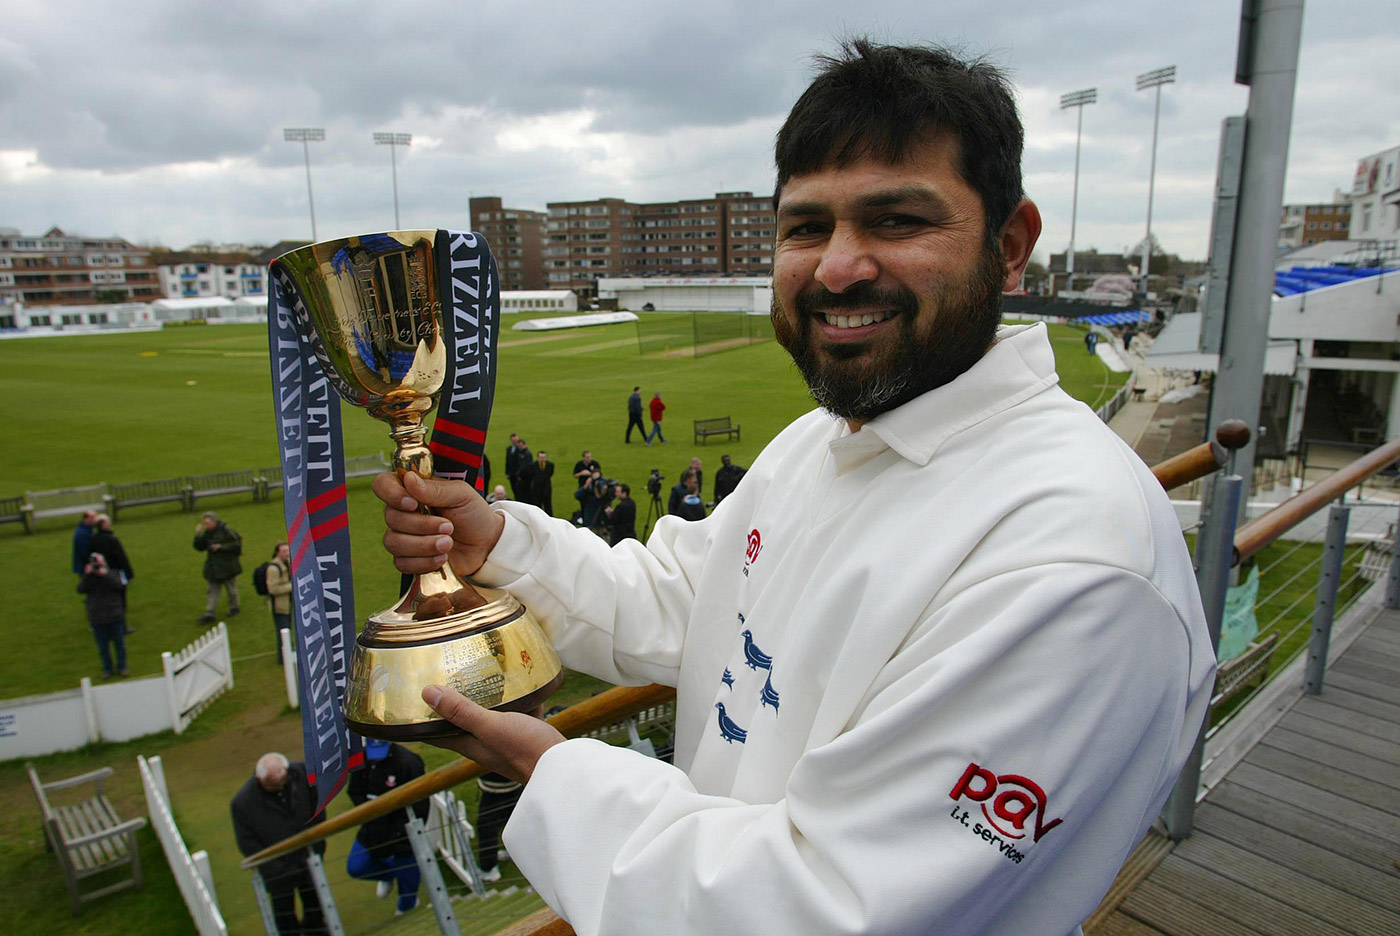 Mushtaq Ahmed shows off the trophy